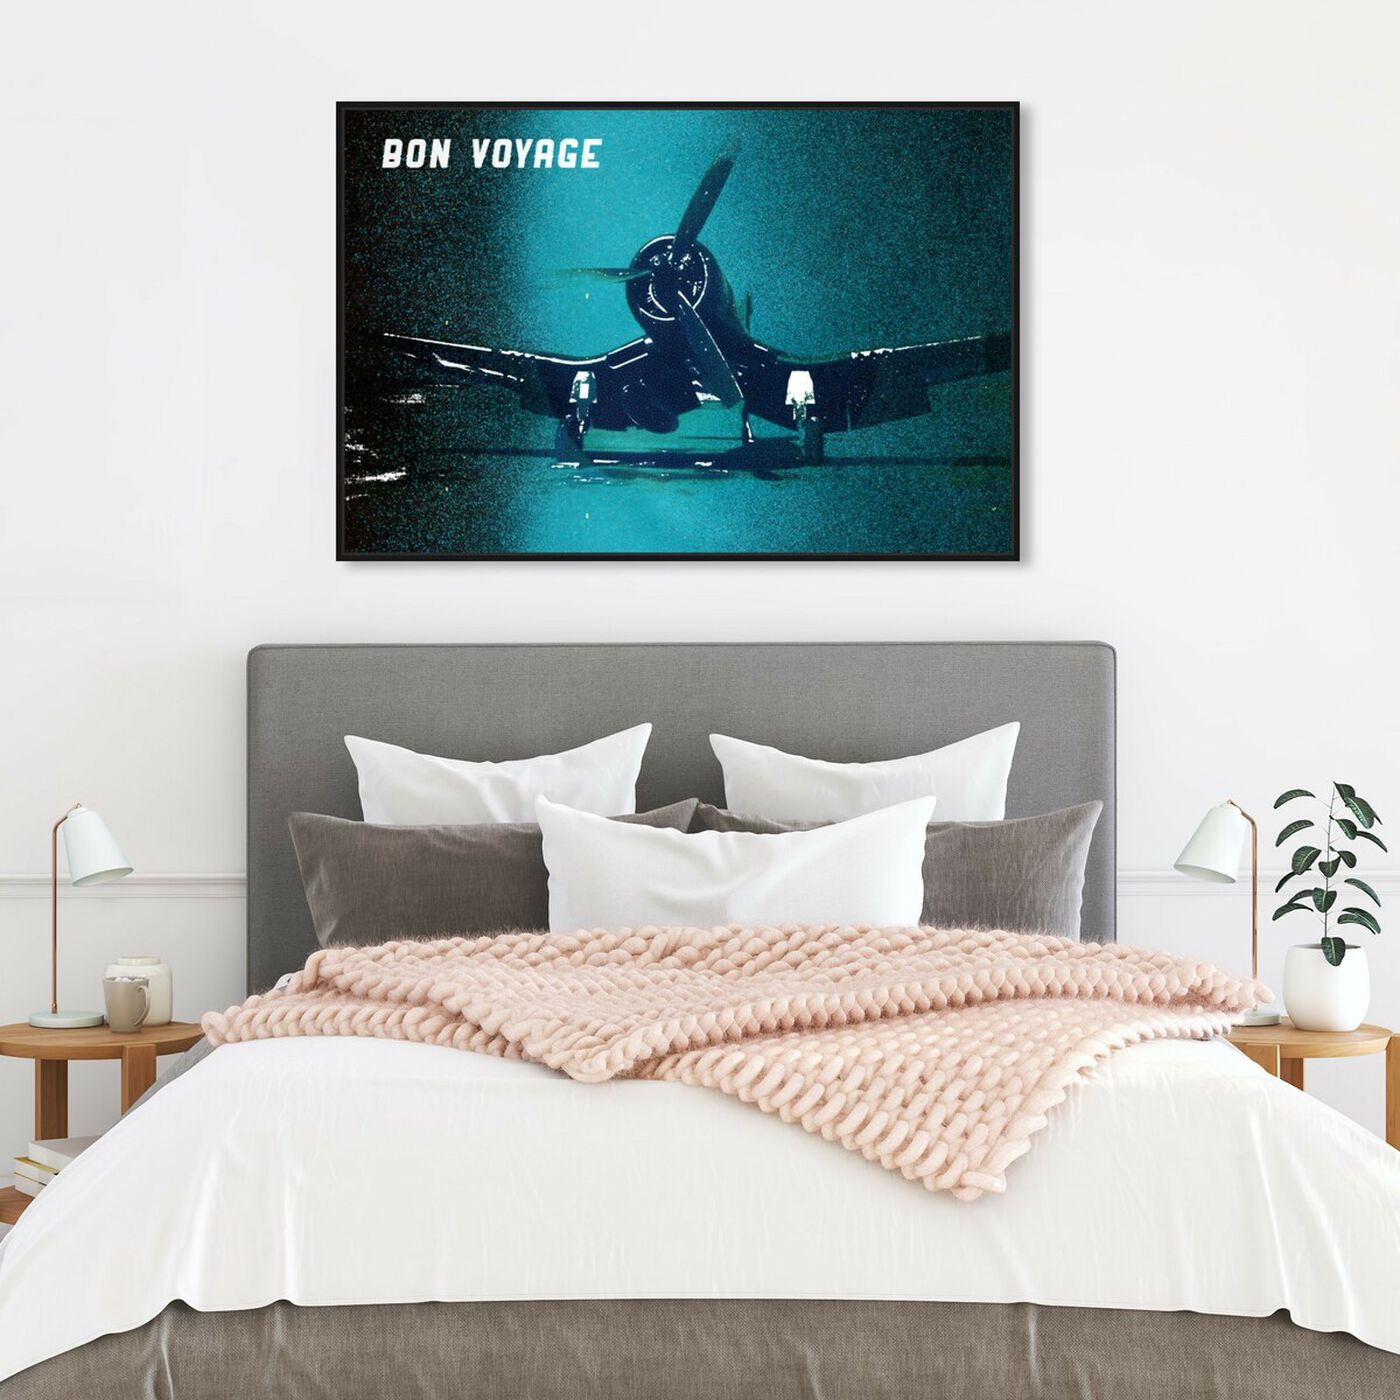 Hanging view of Bon Voyage featuring transportation and airplanes art.